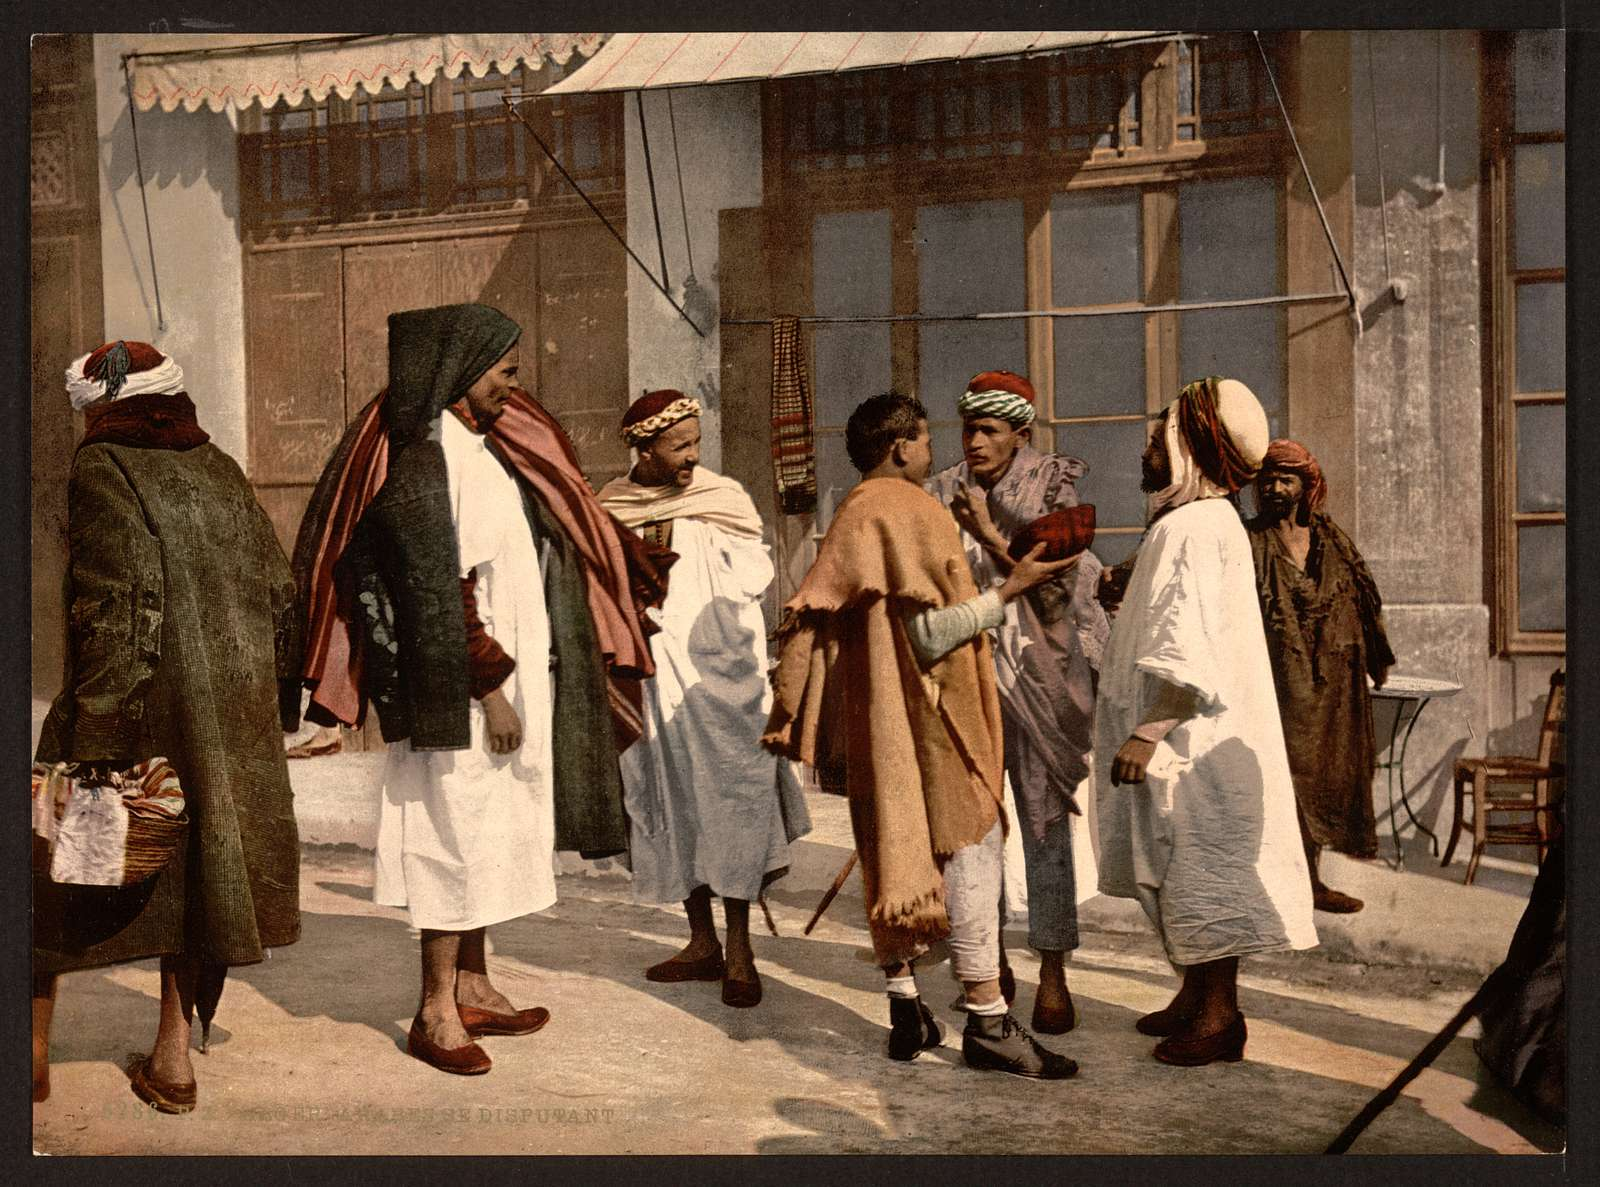 [Arabs disputing, Algiers, Algeria]